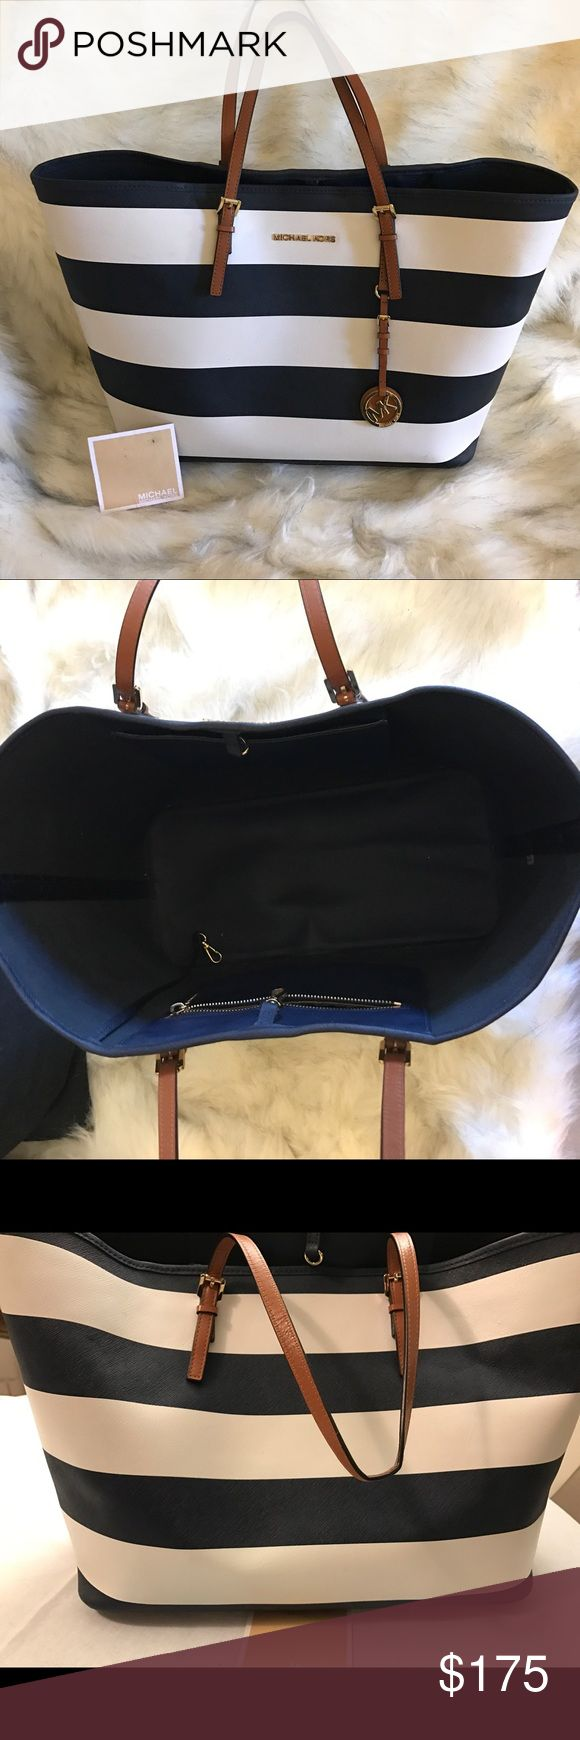 Michael Kors Jet Set striped Tote Bag Authentic Michael Kors Jet Set Navy and White large Tote bag. Brown leather straps and gold tone hardware. Gently used bought in 2013. Great condition Michael Kors Bags Totes